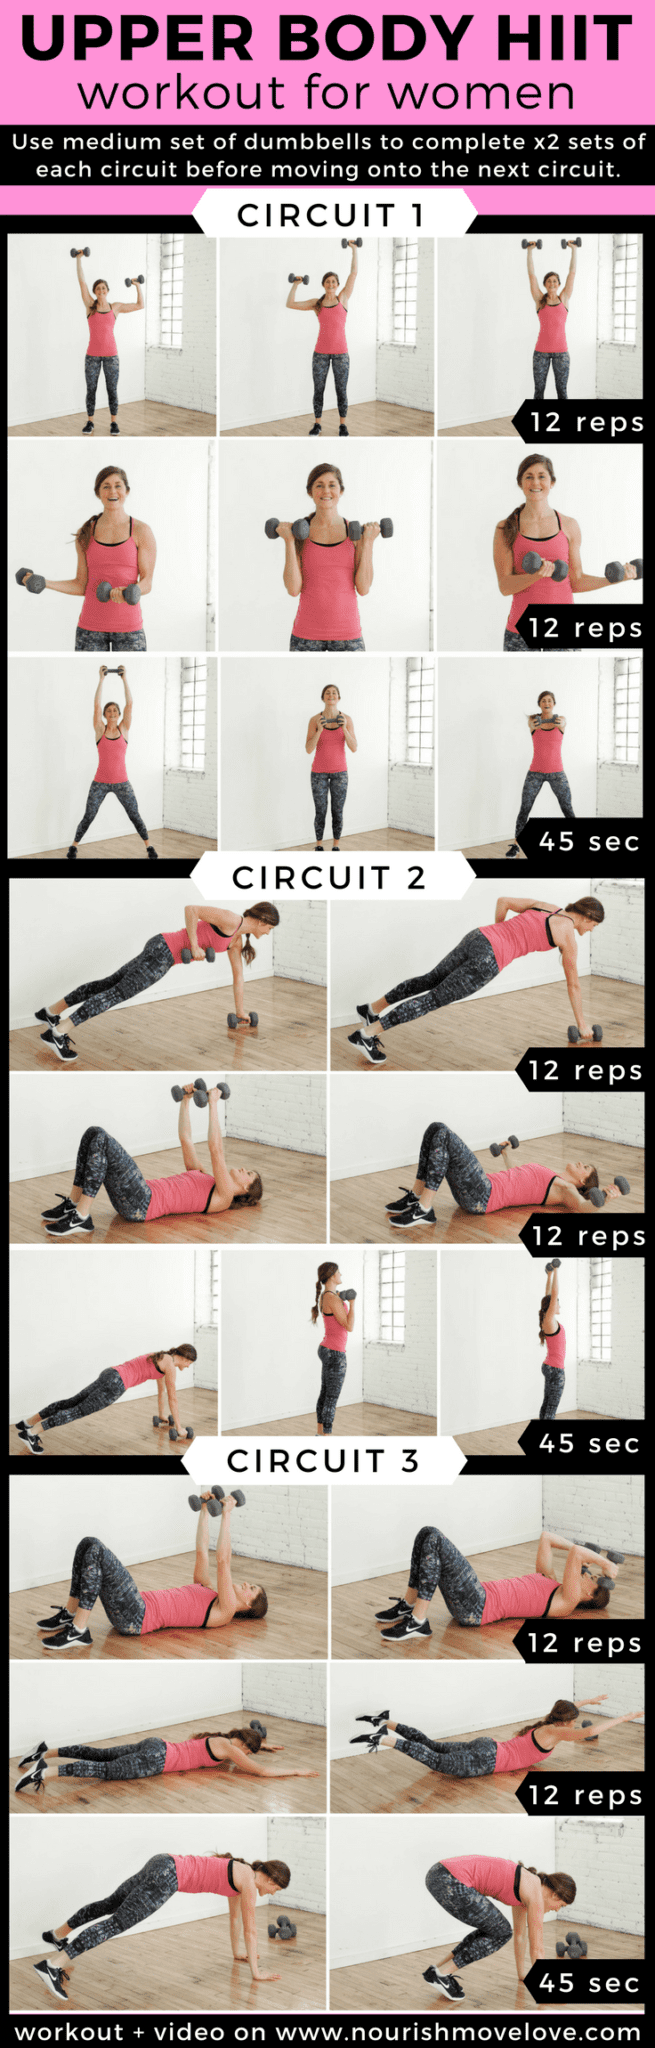 Upper Body Hiit Workout For Women Nourish Move Love Circuit Style